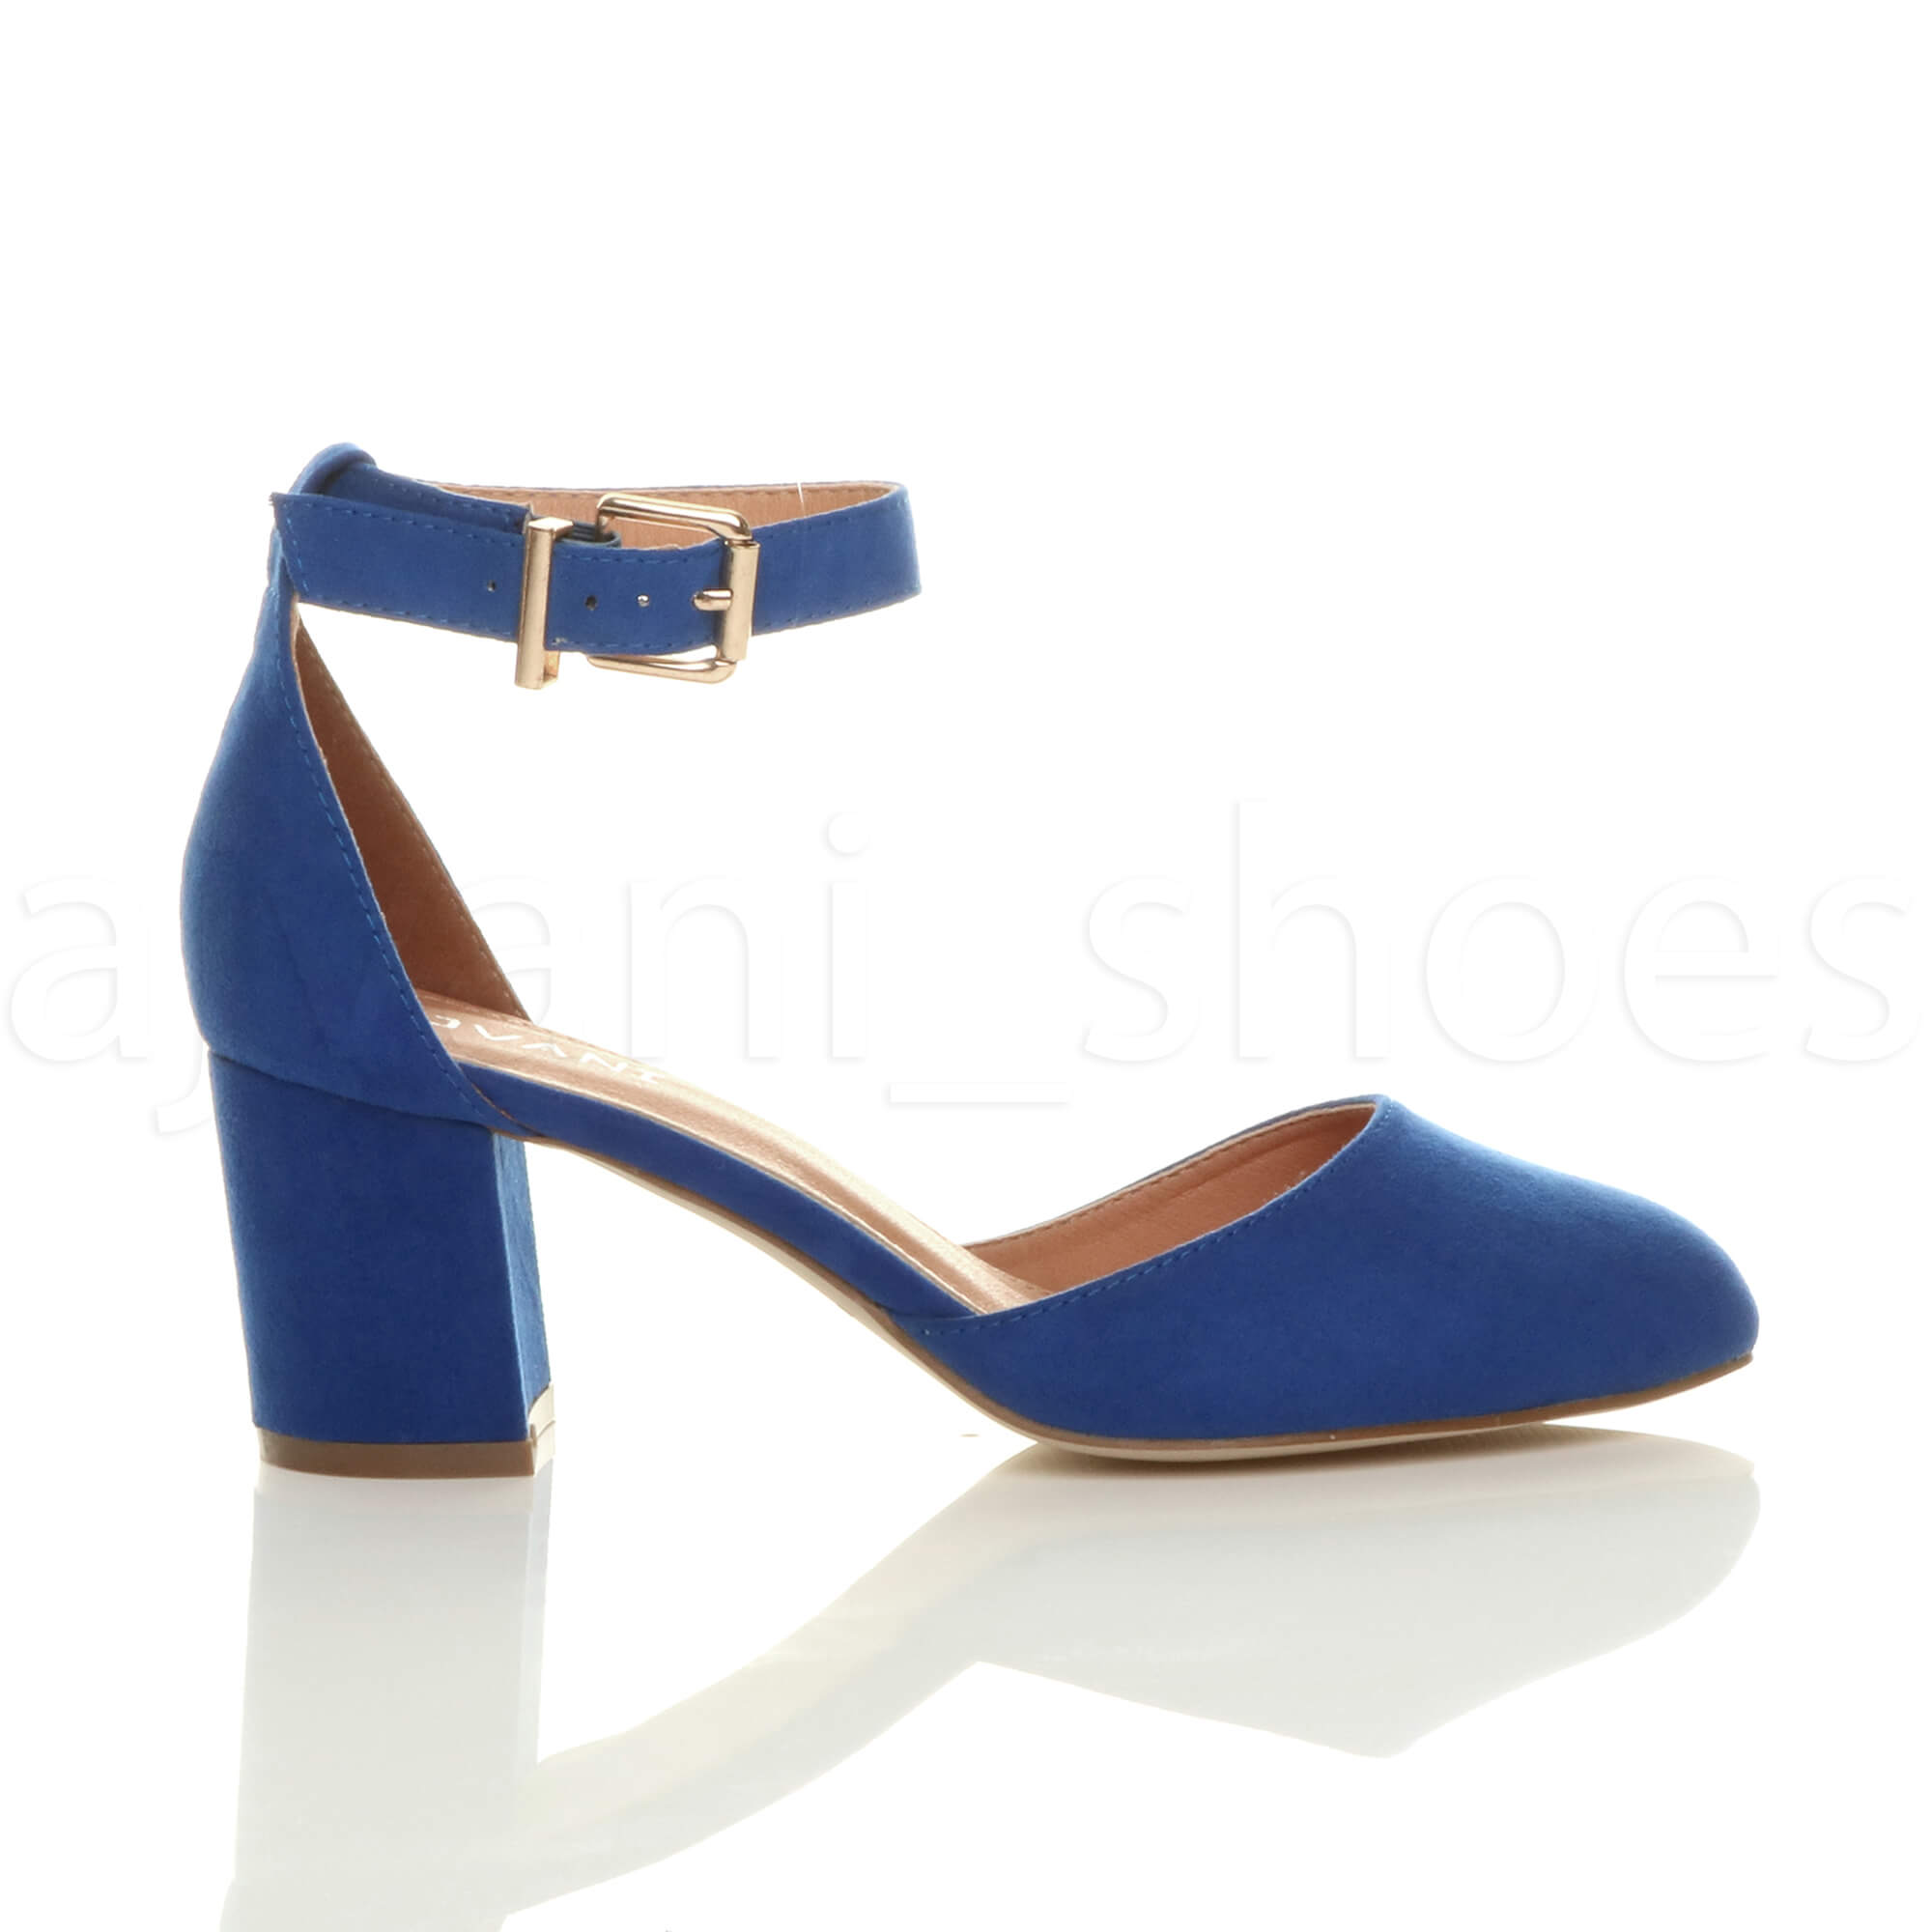 WOMENS-LADIES-LOW-MID-BLOCK-HEEL-ANKLE-STRAP-MARY-JANE-COURT-SHOES-SANDALS-SIZE thumbnail 27